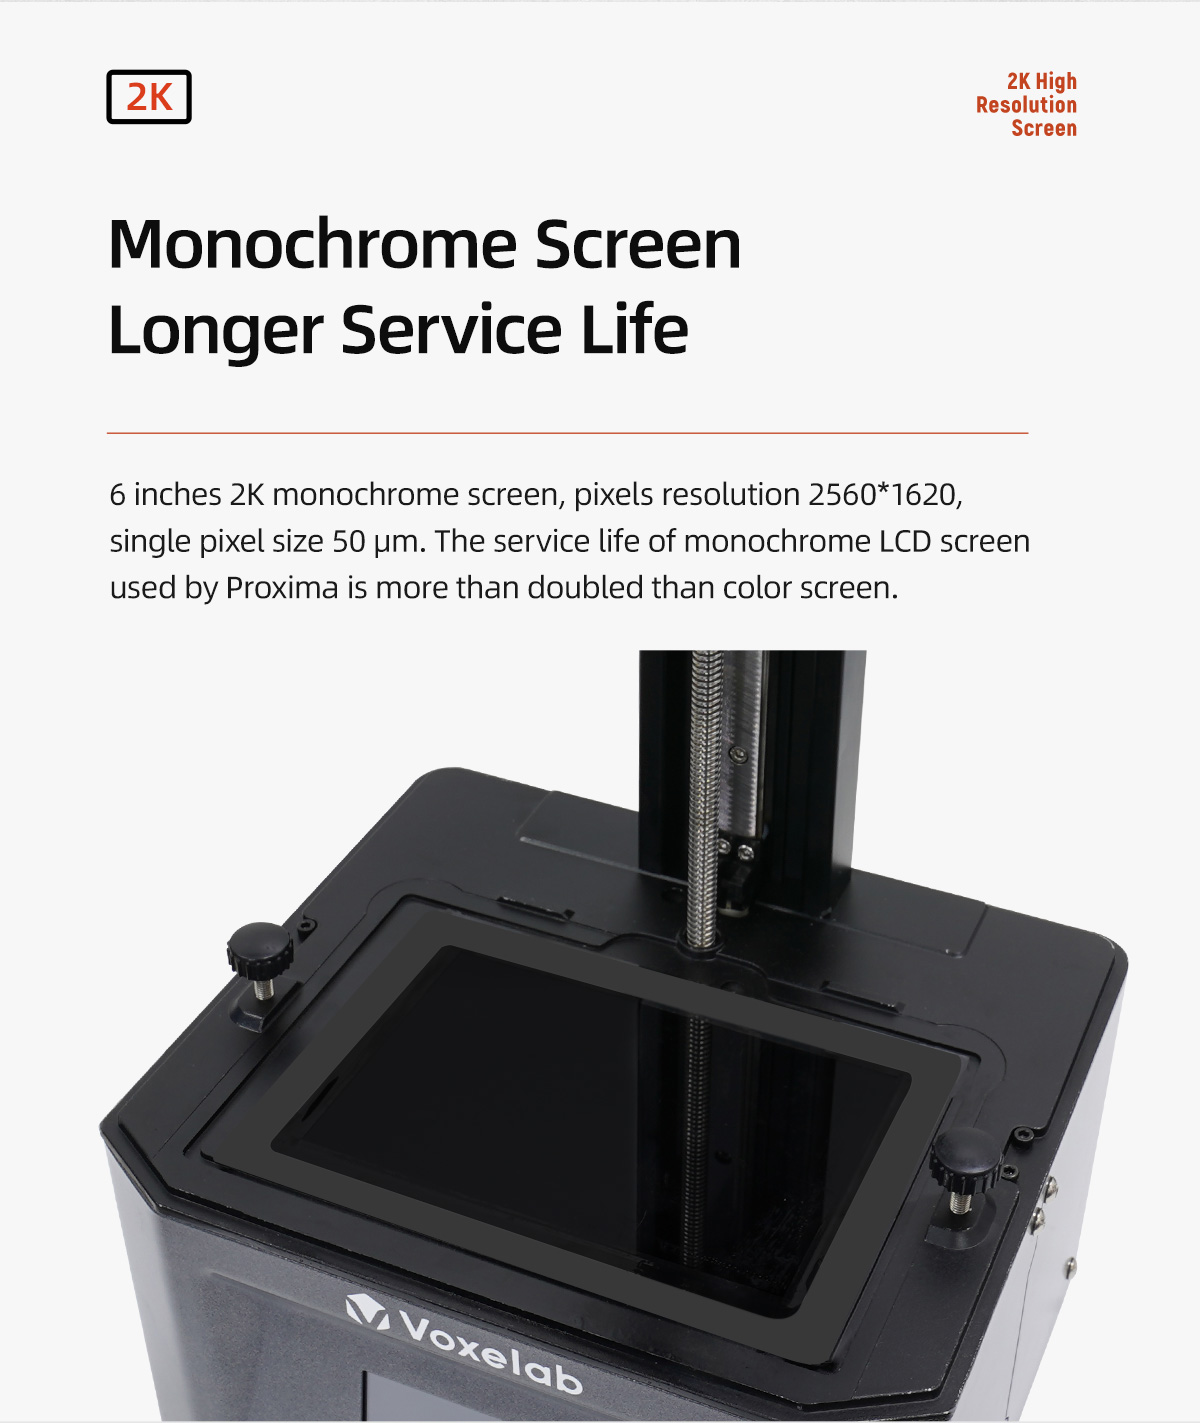 2K Monochrome Screen Longer Service Life The service life of monochrome LCD screen used by Proxima is more than doubled than color screen